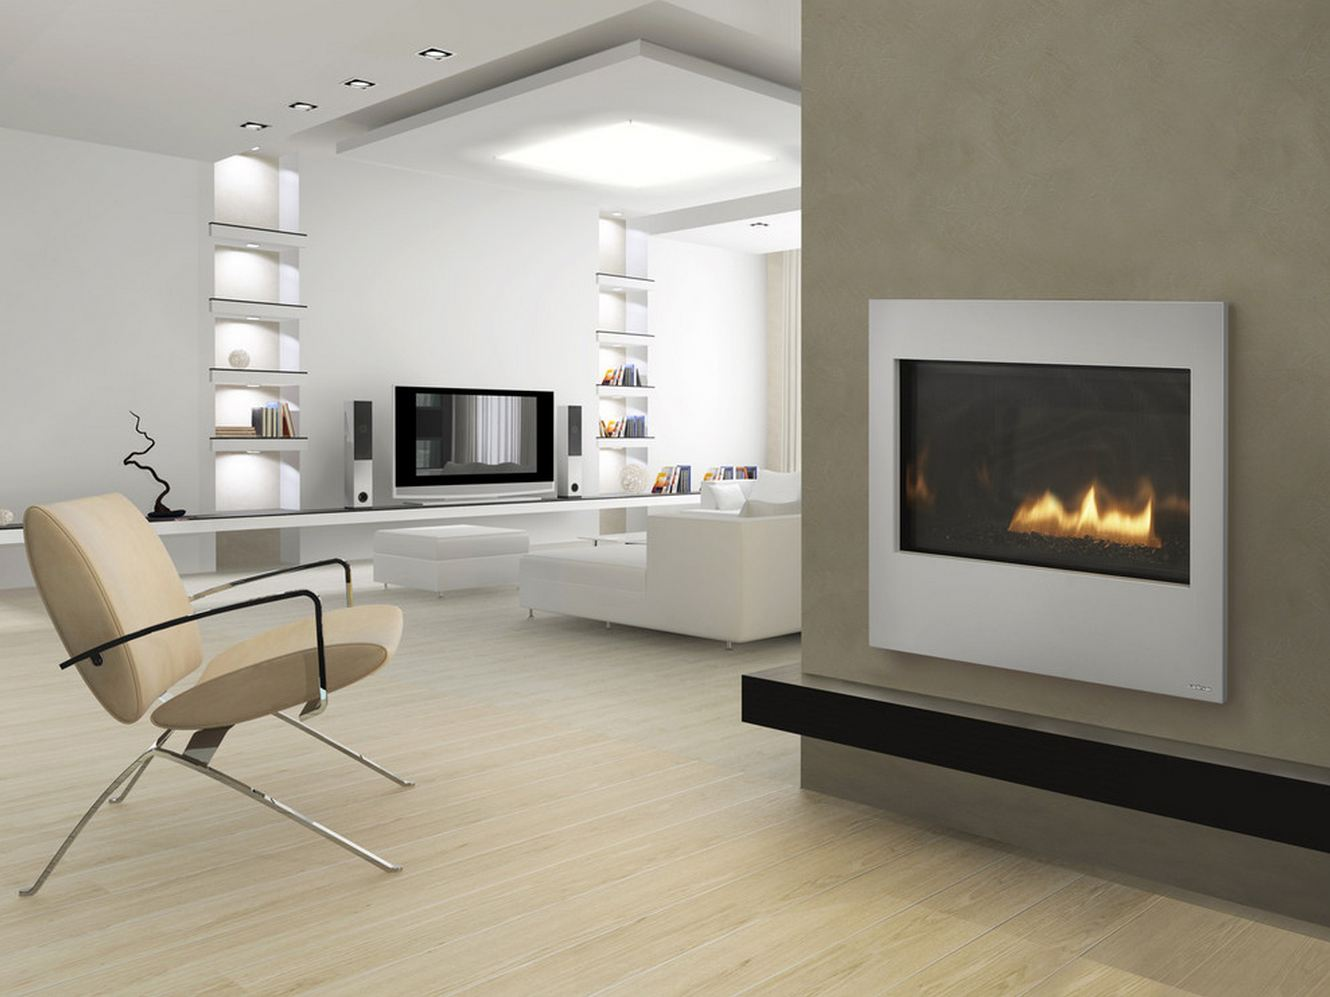 Modern Fireplace Images Unique Fireplace Idea Gallery Heat Glo